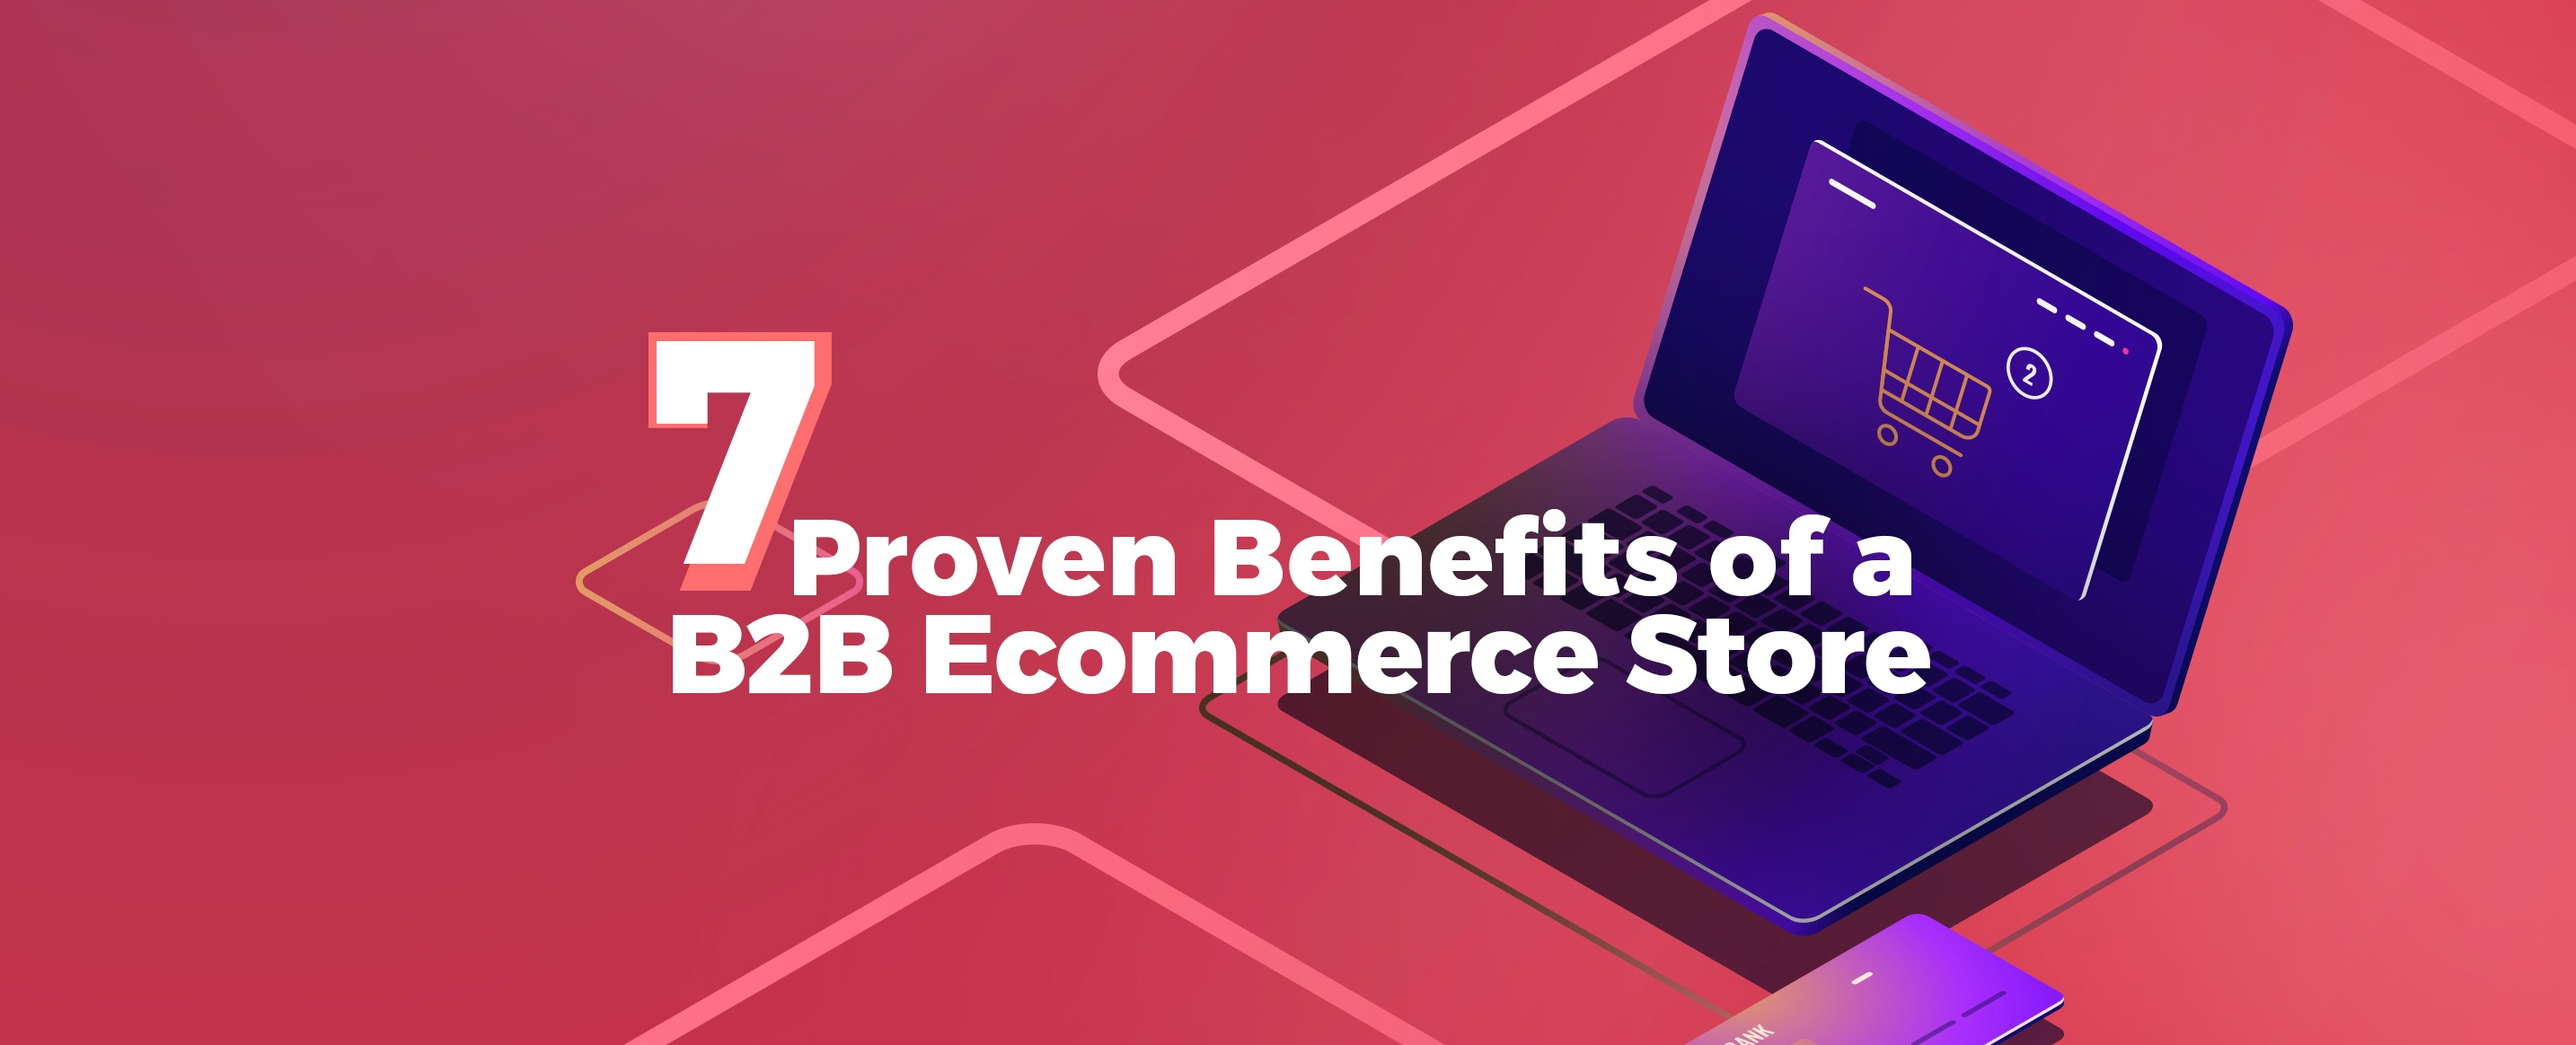 7-Proven-Benefits-of-a-B2B-Ecommerce-Store